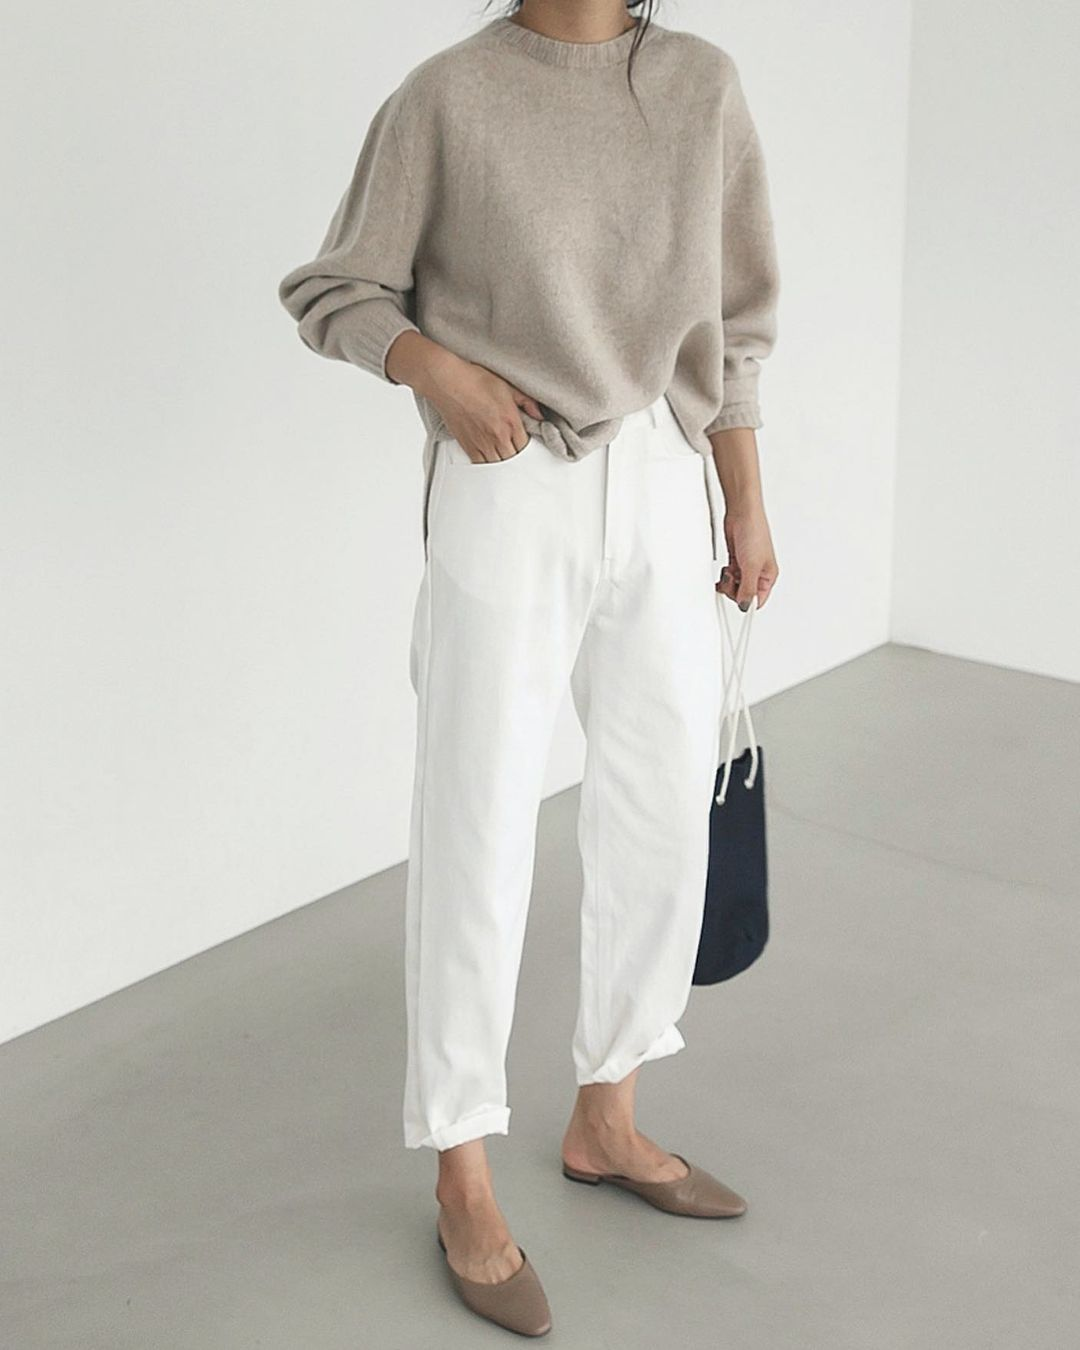 Stylish Fall Outfit Idea with Neutrals — Deathbyelocution Instagram Style with Beige Sweater, White Jeans, and Taupe Mule Flats